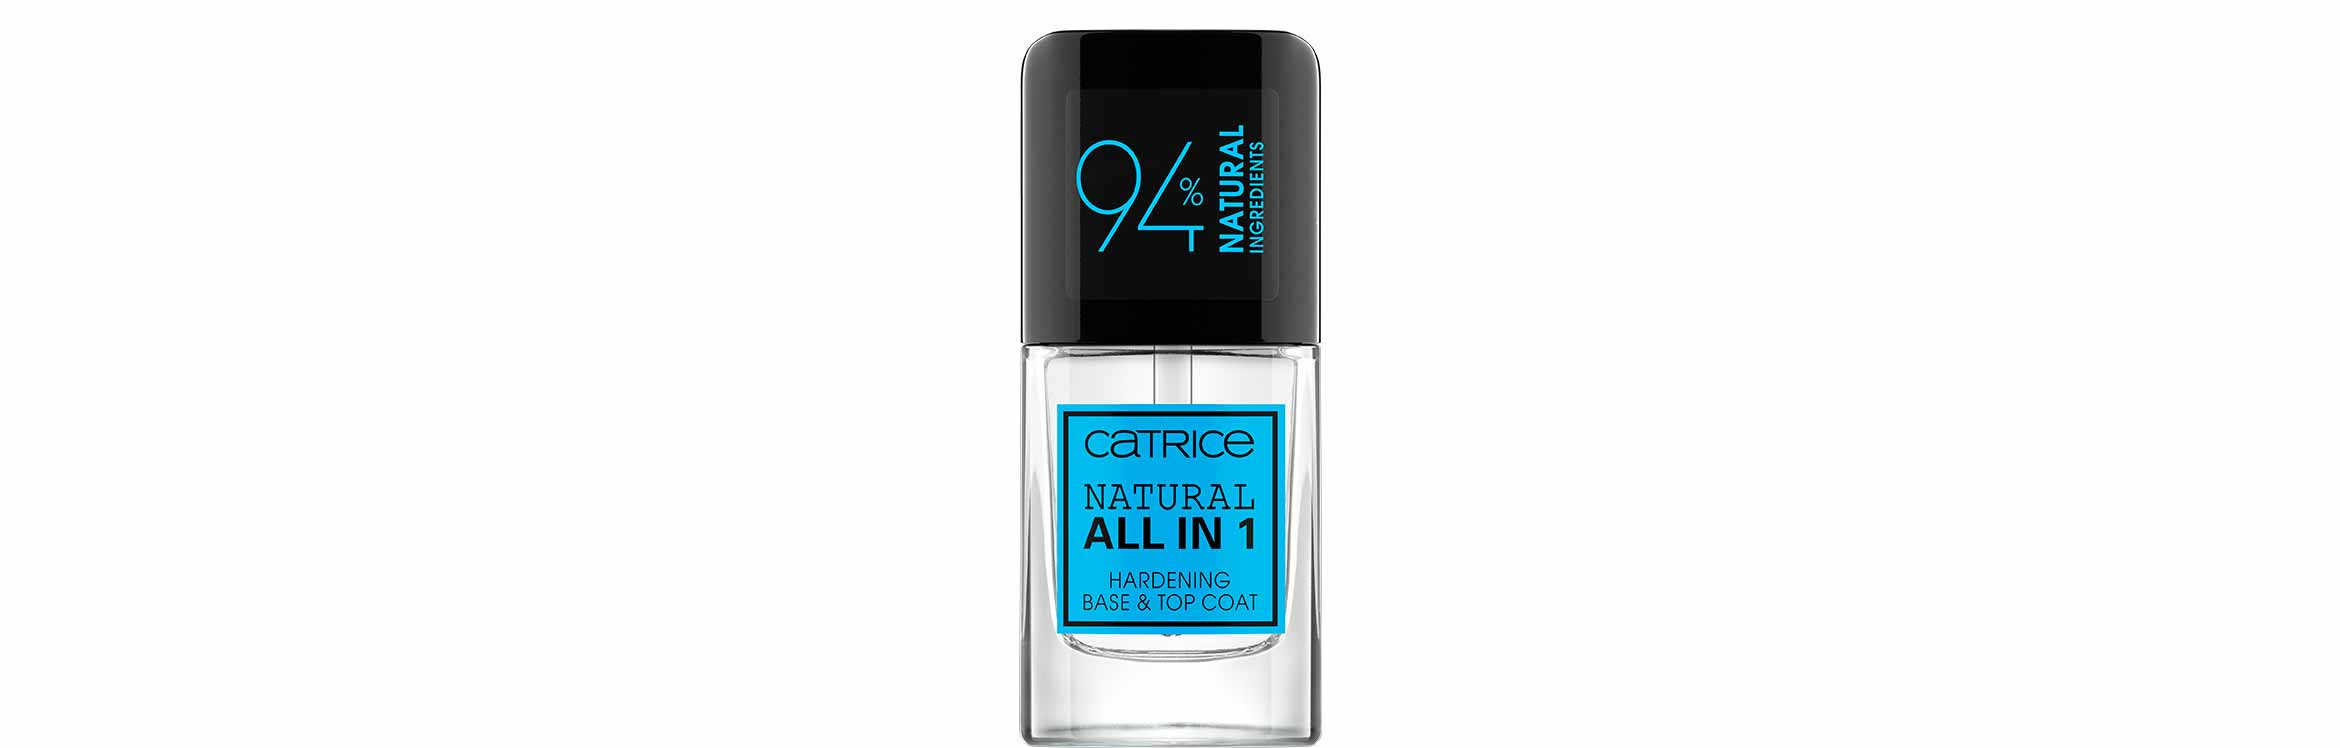 catrice natural all in 1 hardening base & top coat